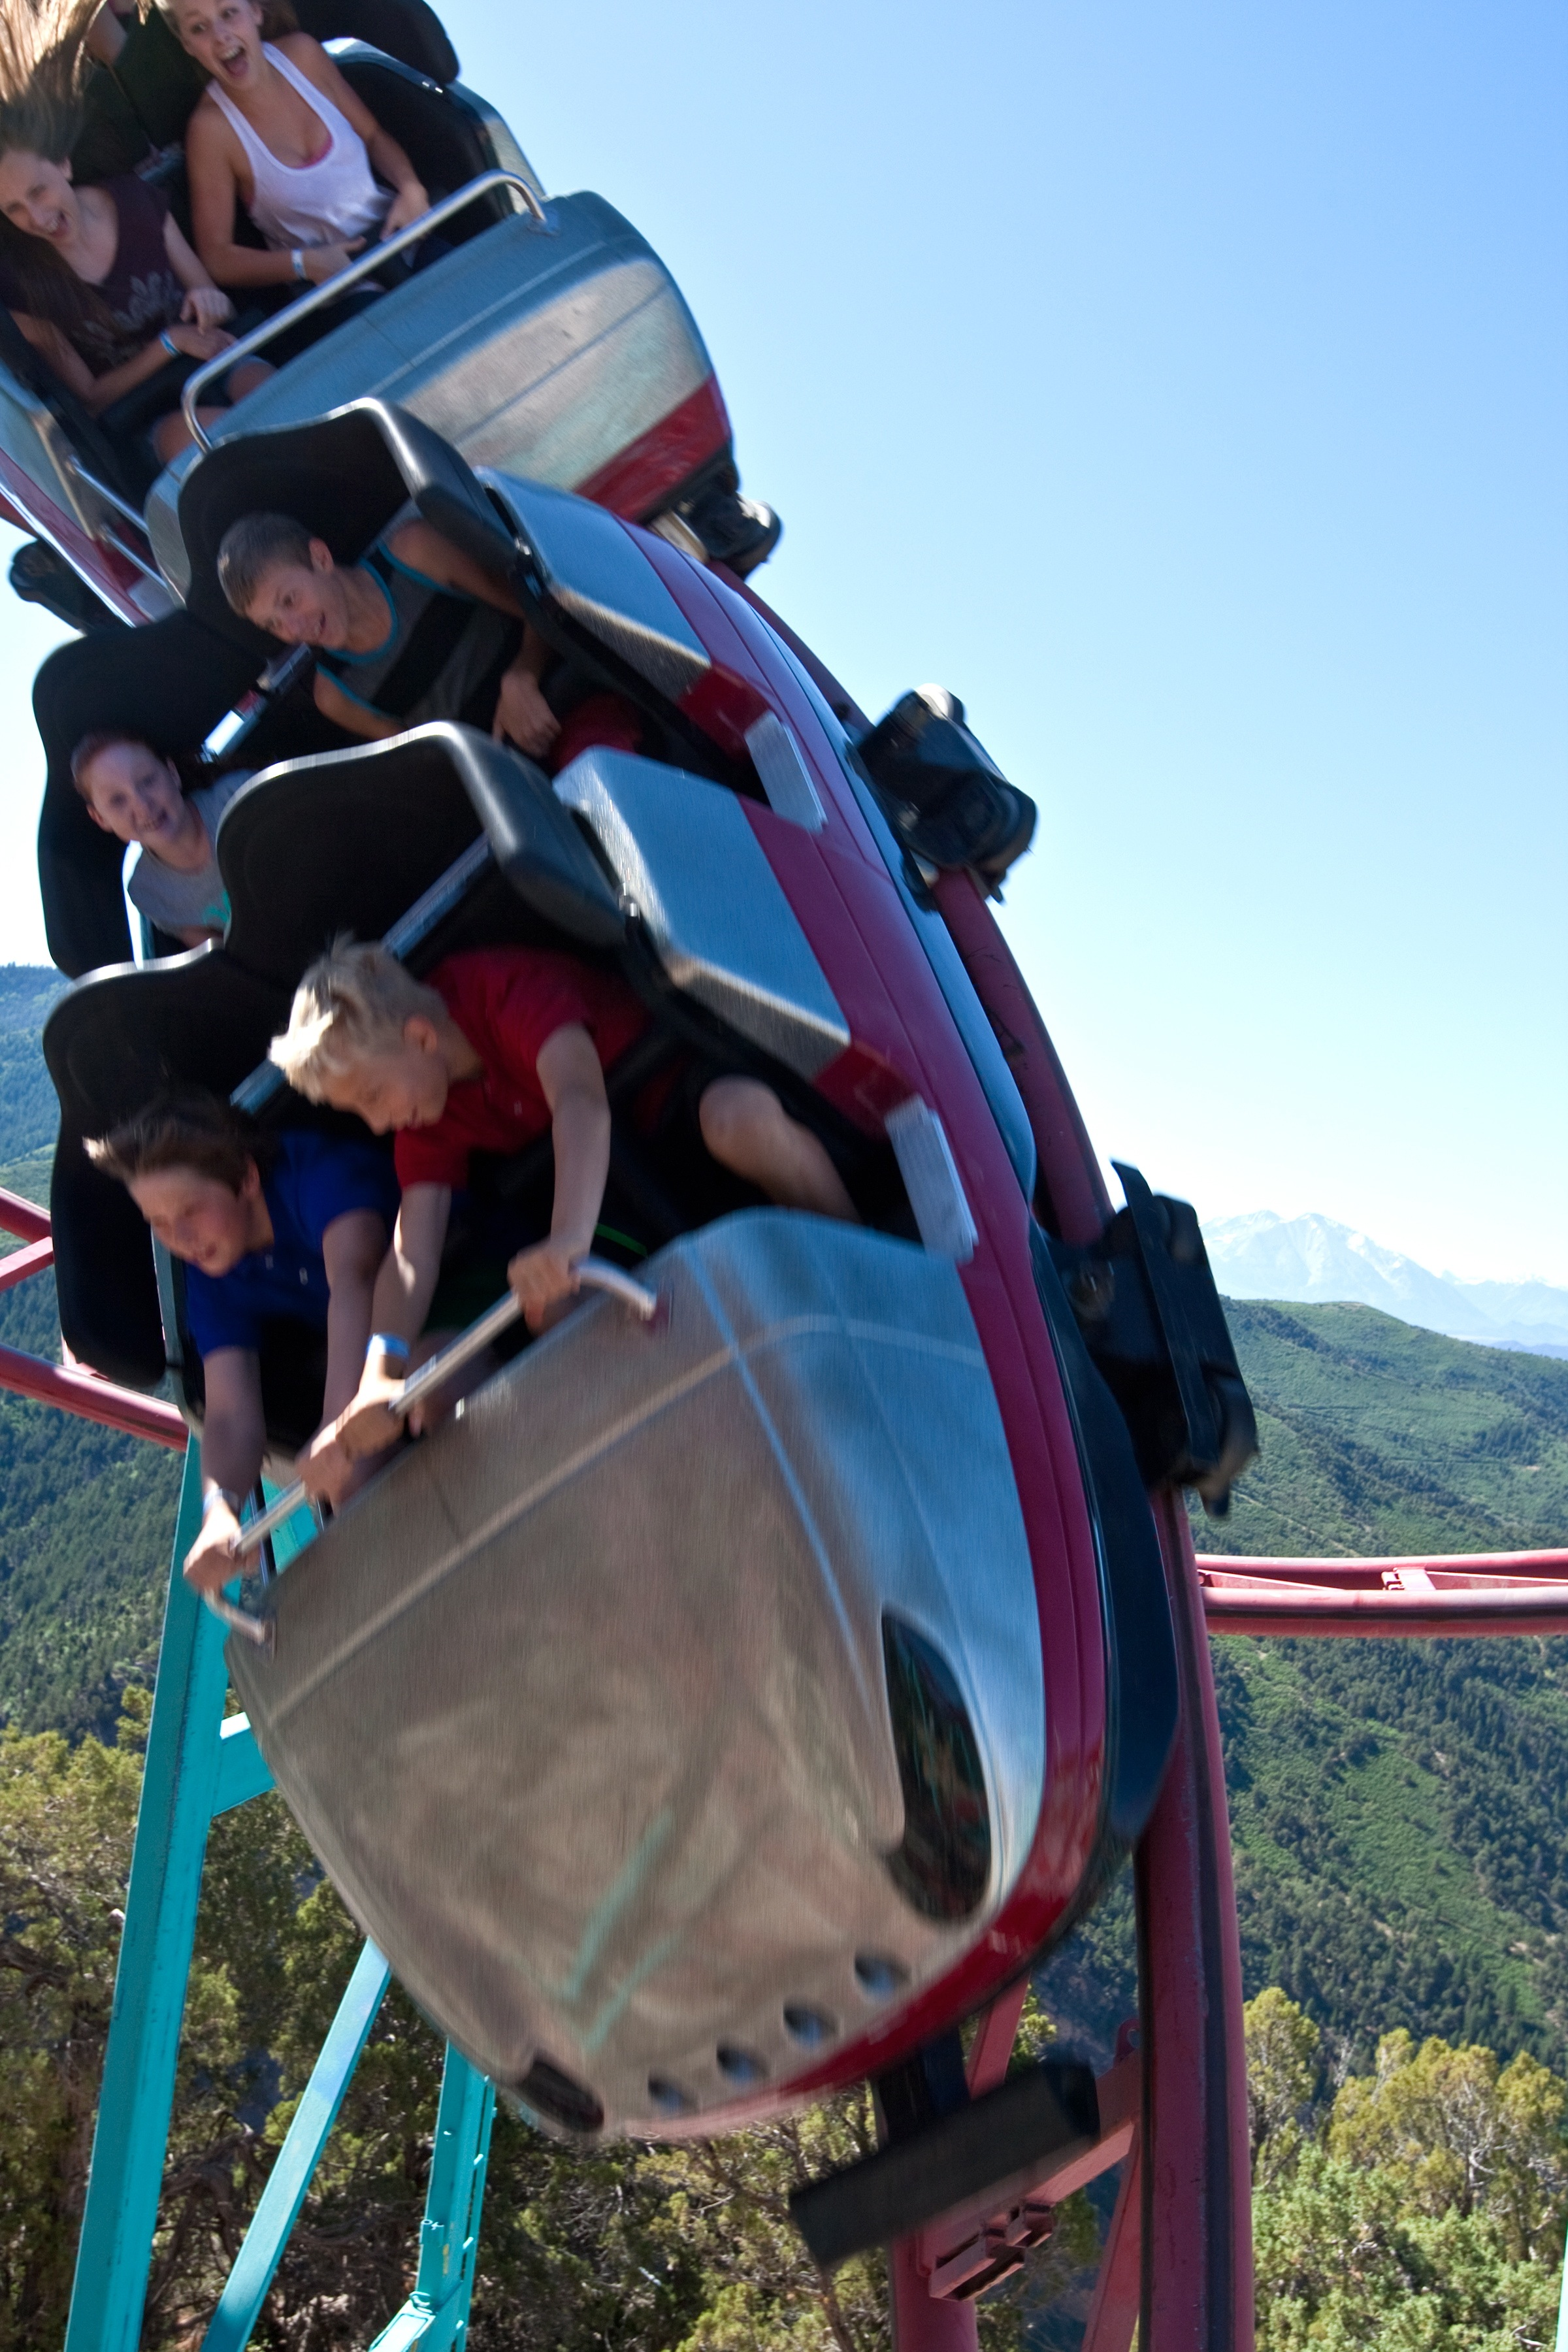 America S Highest Elevation Roller Coaster Opens At